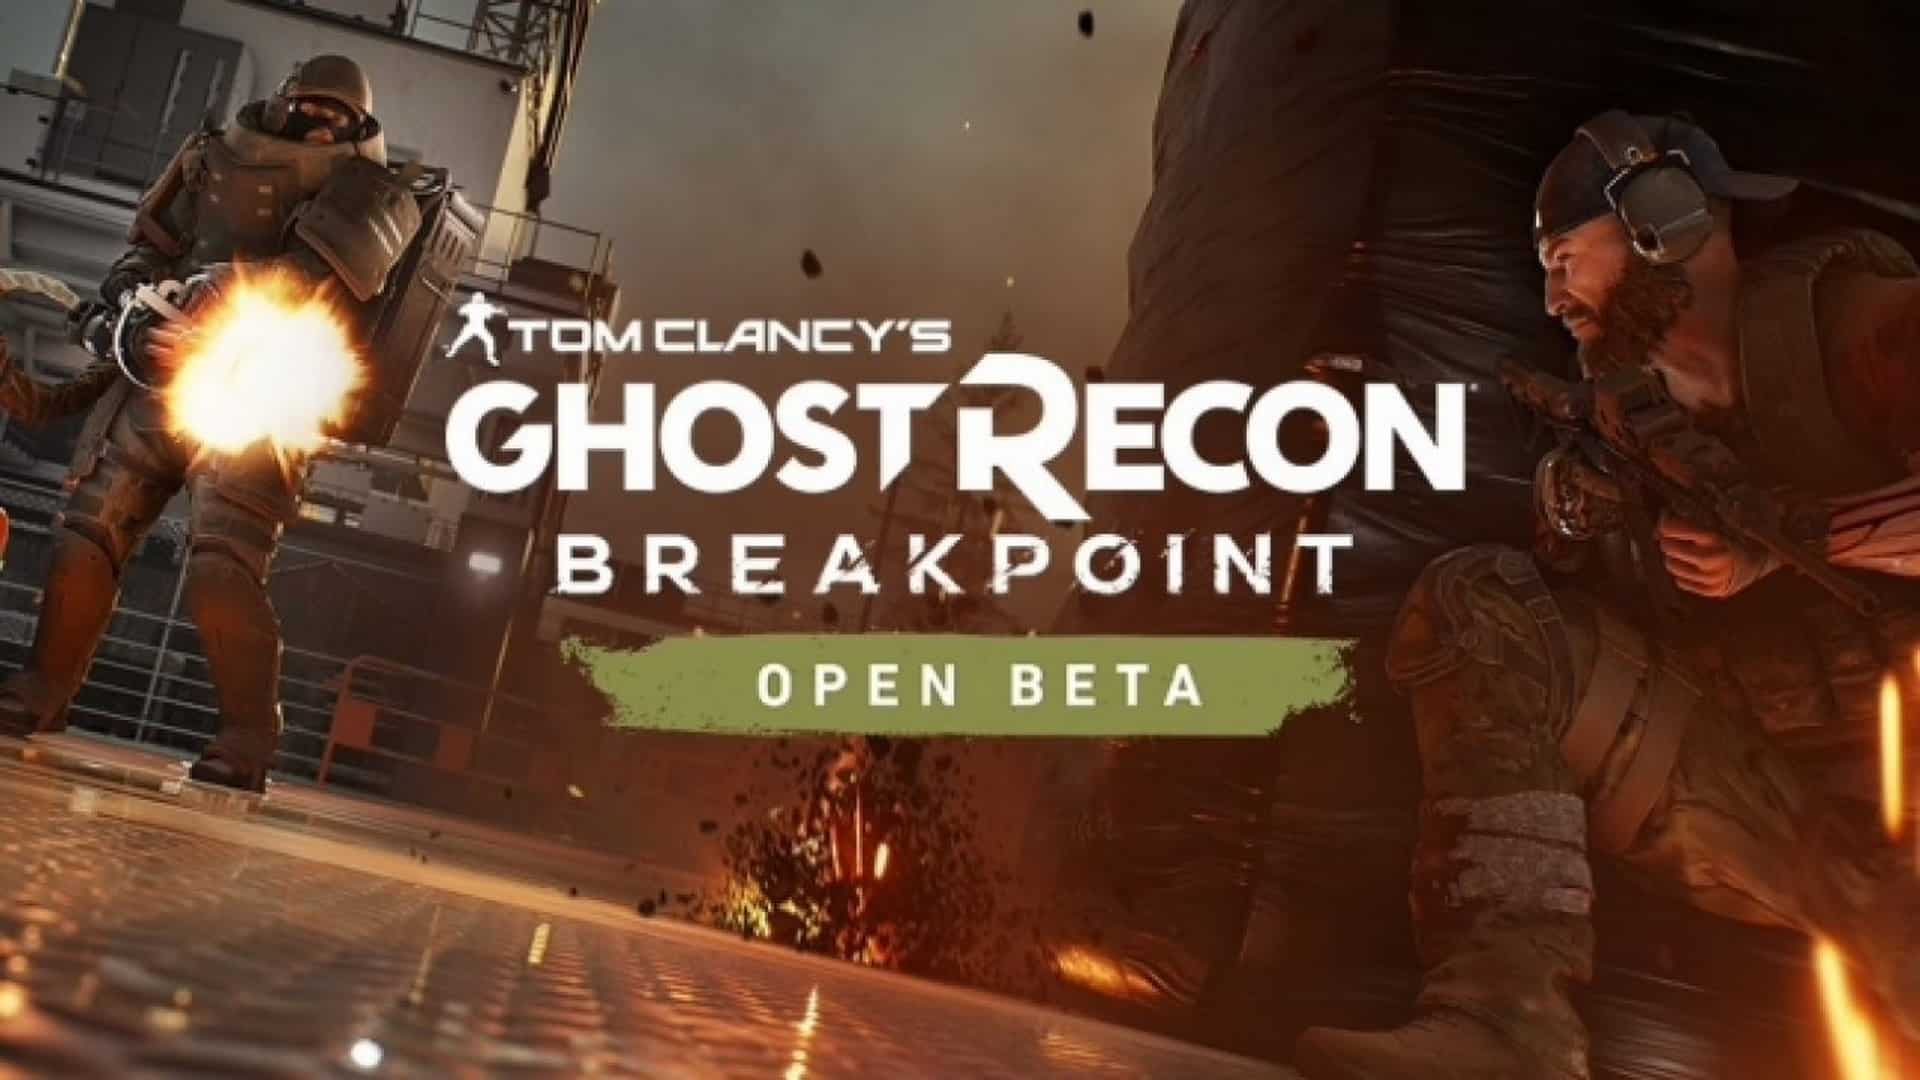 Ghost Recon Breakpoint Announces Open BETA Dates